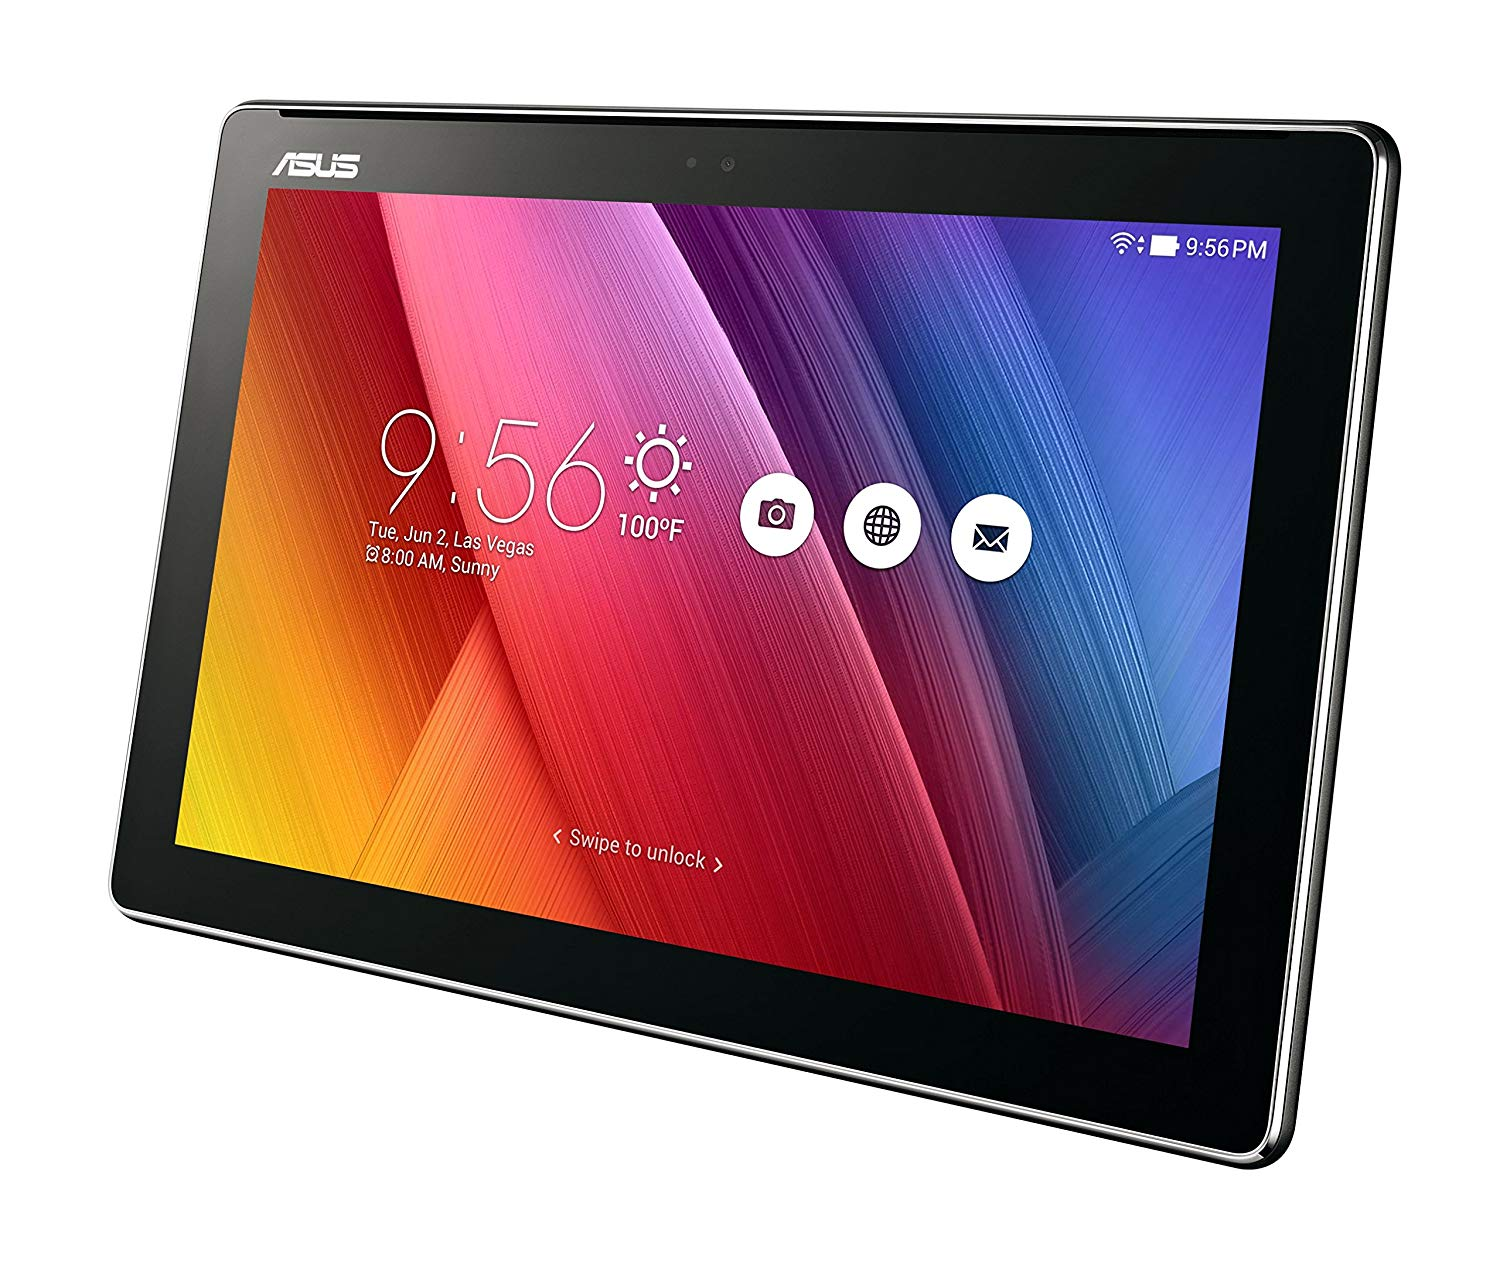 asus zenpad inch tablet computers accent tablette fast accessories umbrella base weights living room furniture tray top table target grey high quality hobby lobby sofa tiffany